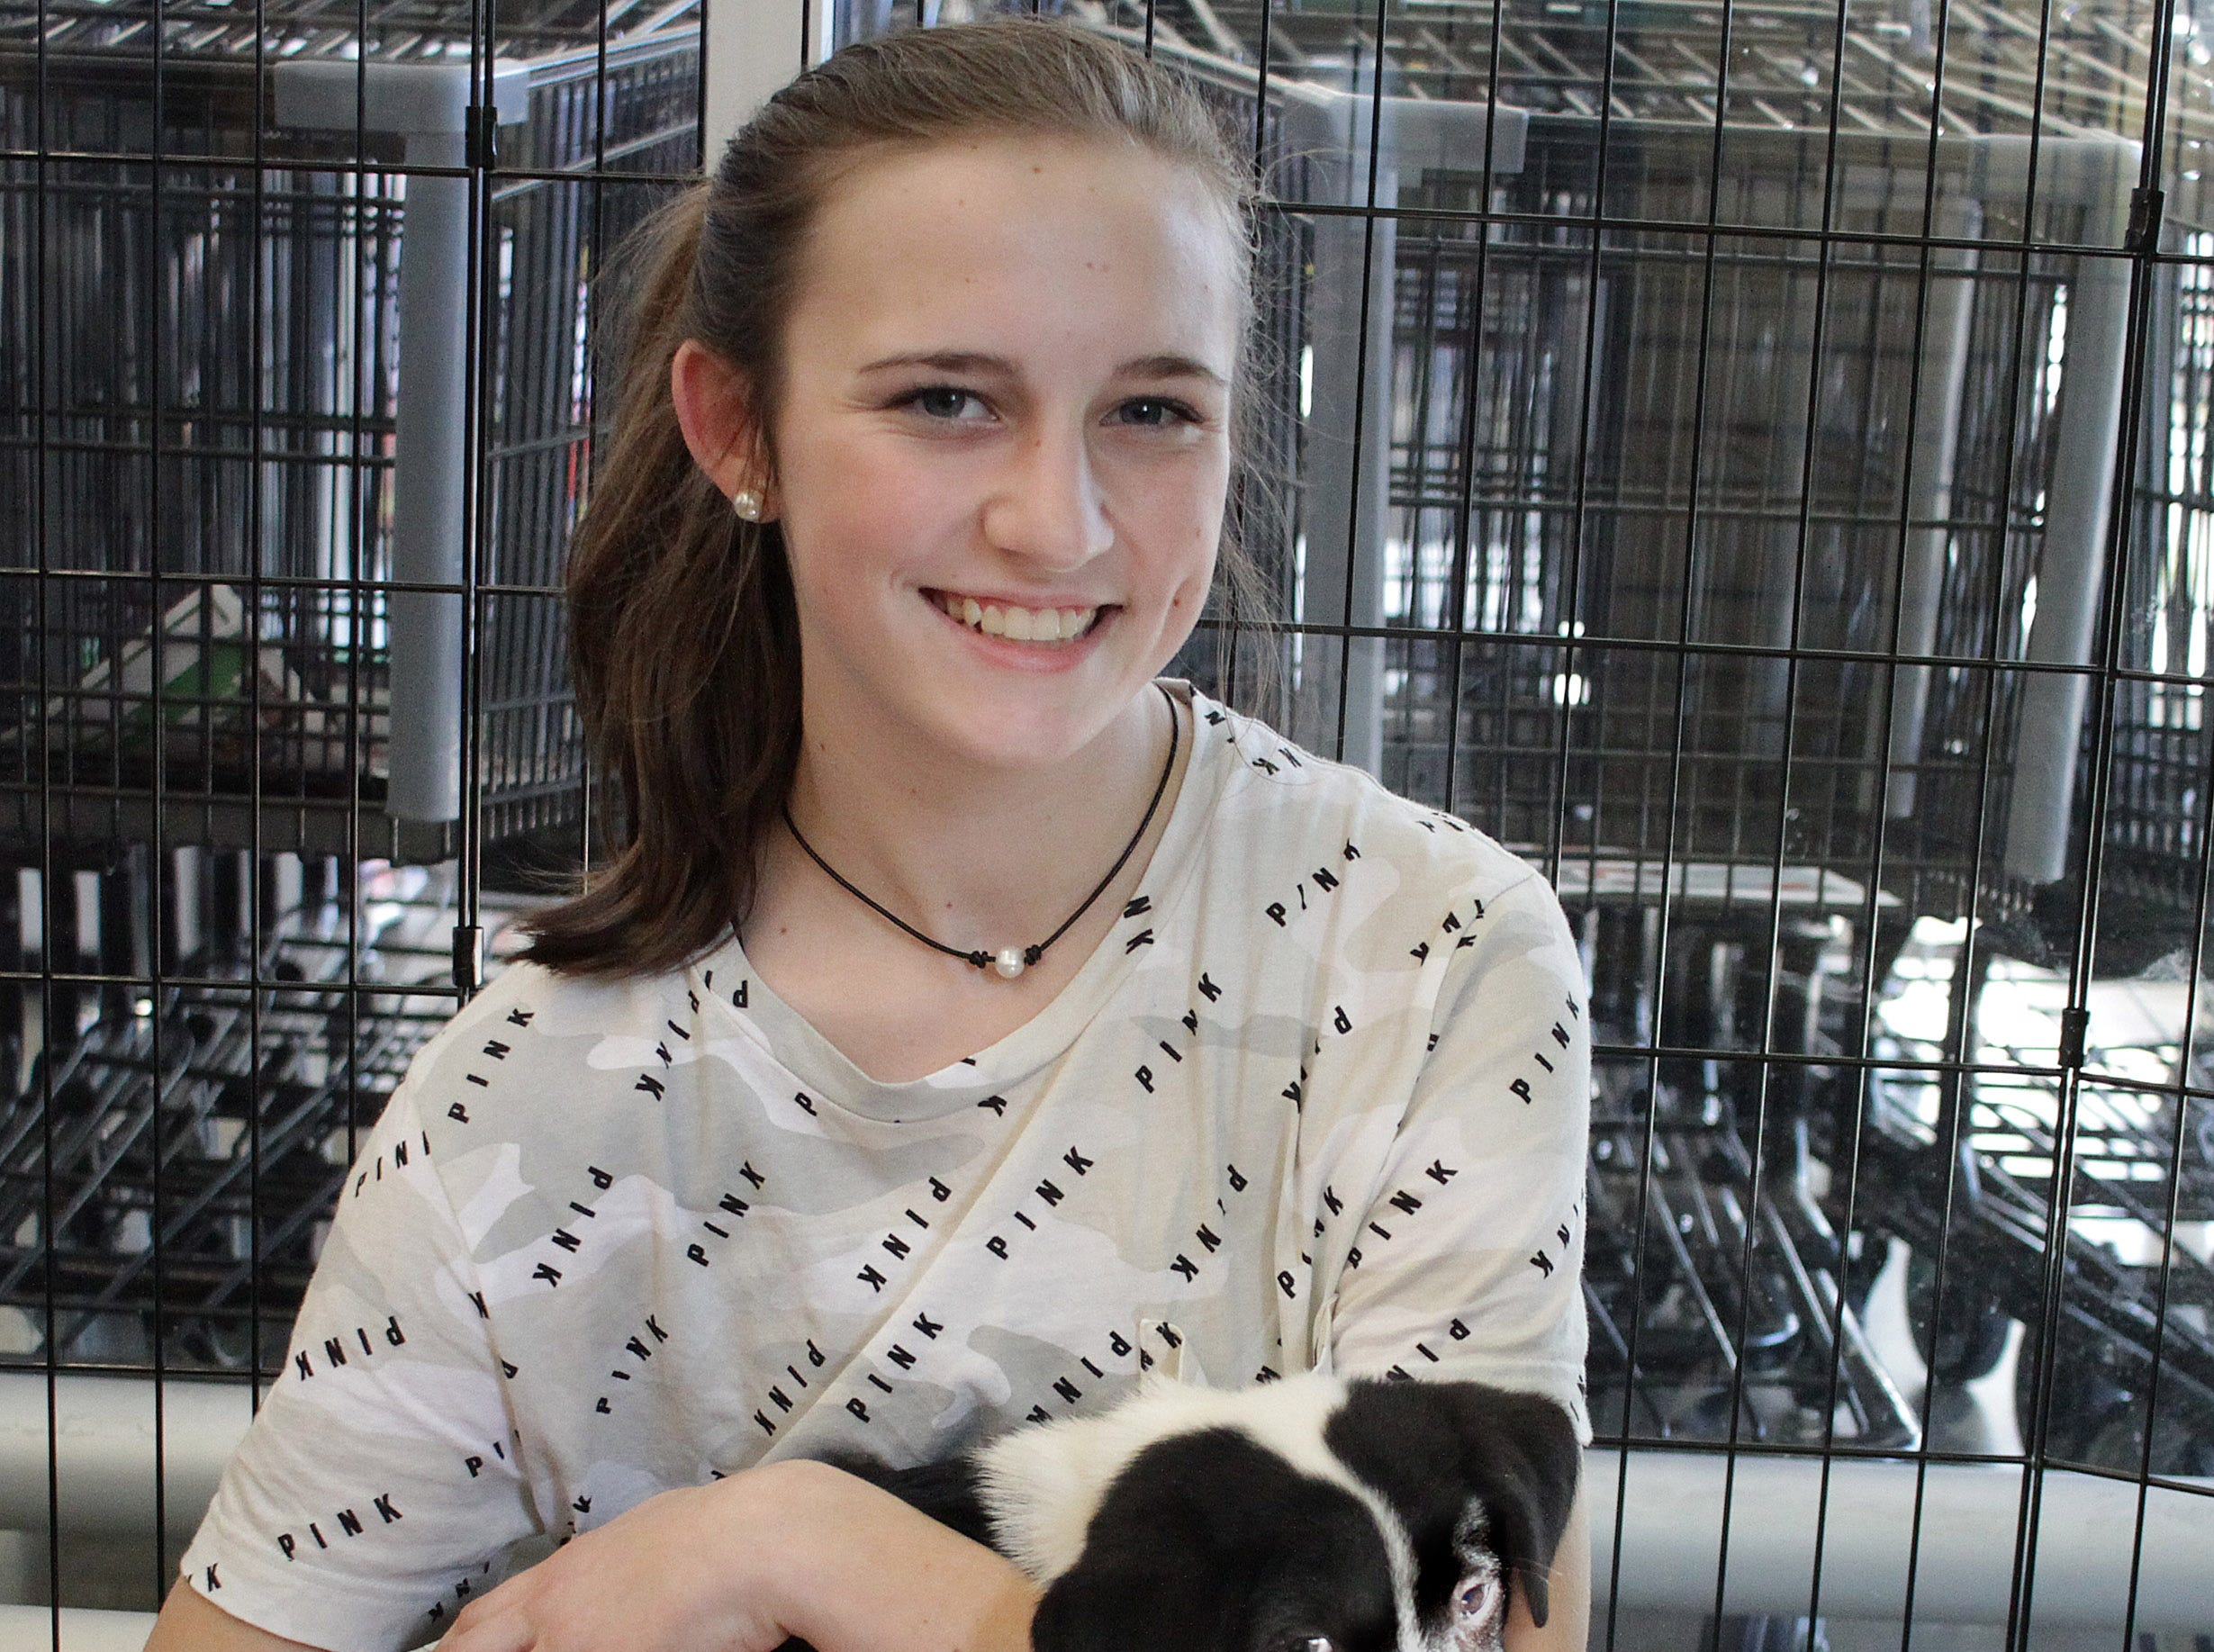 Paige Pardoe (13) holds a puppy at Jojo's Doghouse adoption event at Pet Supplies Plus in Hendersonville. TN on Saturday, January 5, 2019.